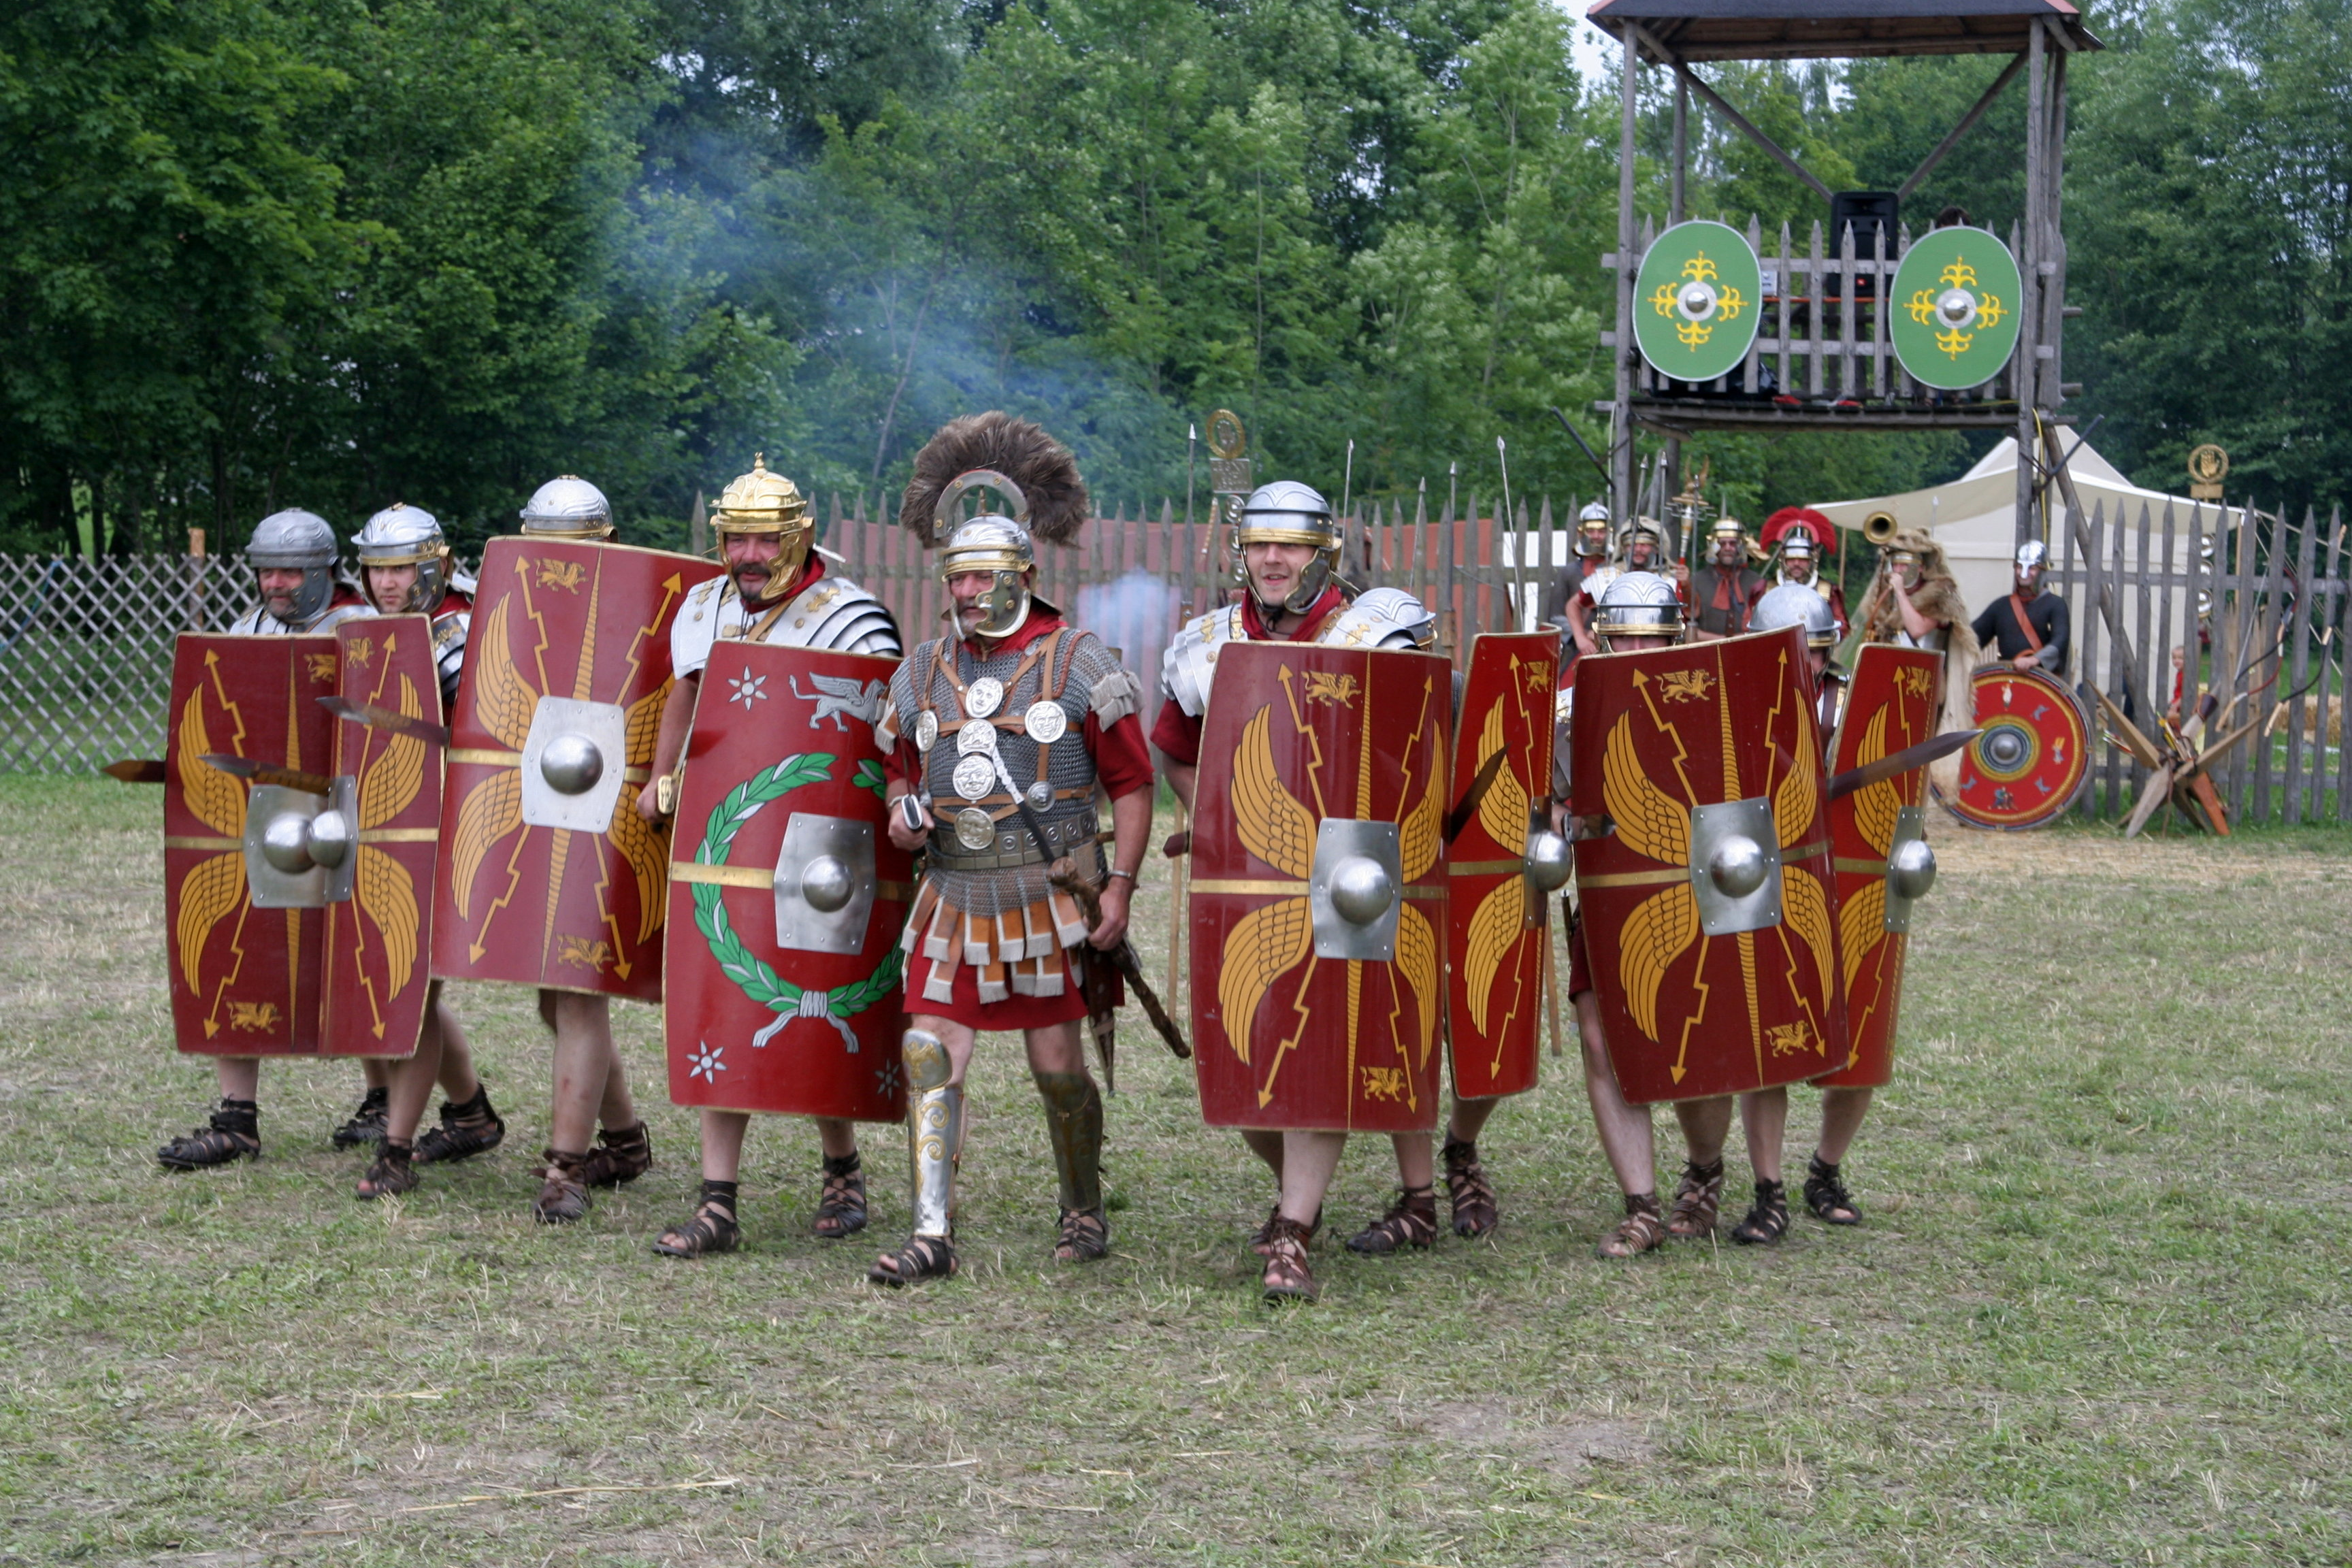 roman military The main page for the romans in britain military area from here, the visitor can find a huge amount of info about the roman military, especially how it was in britain.